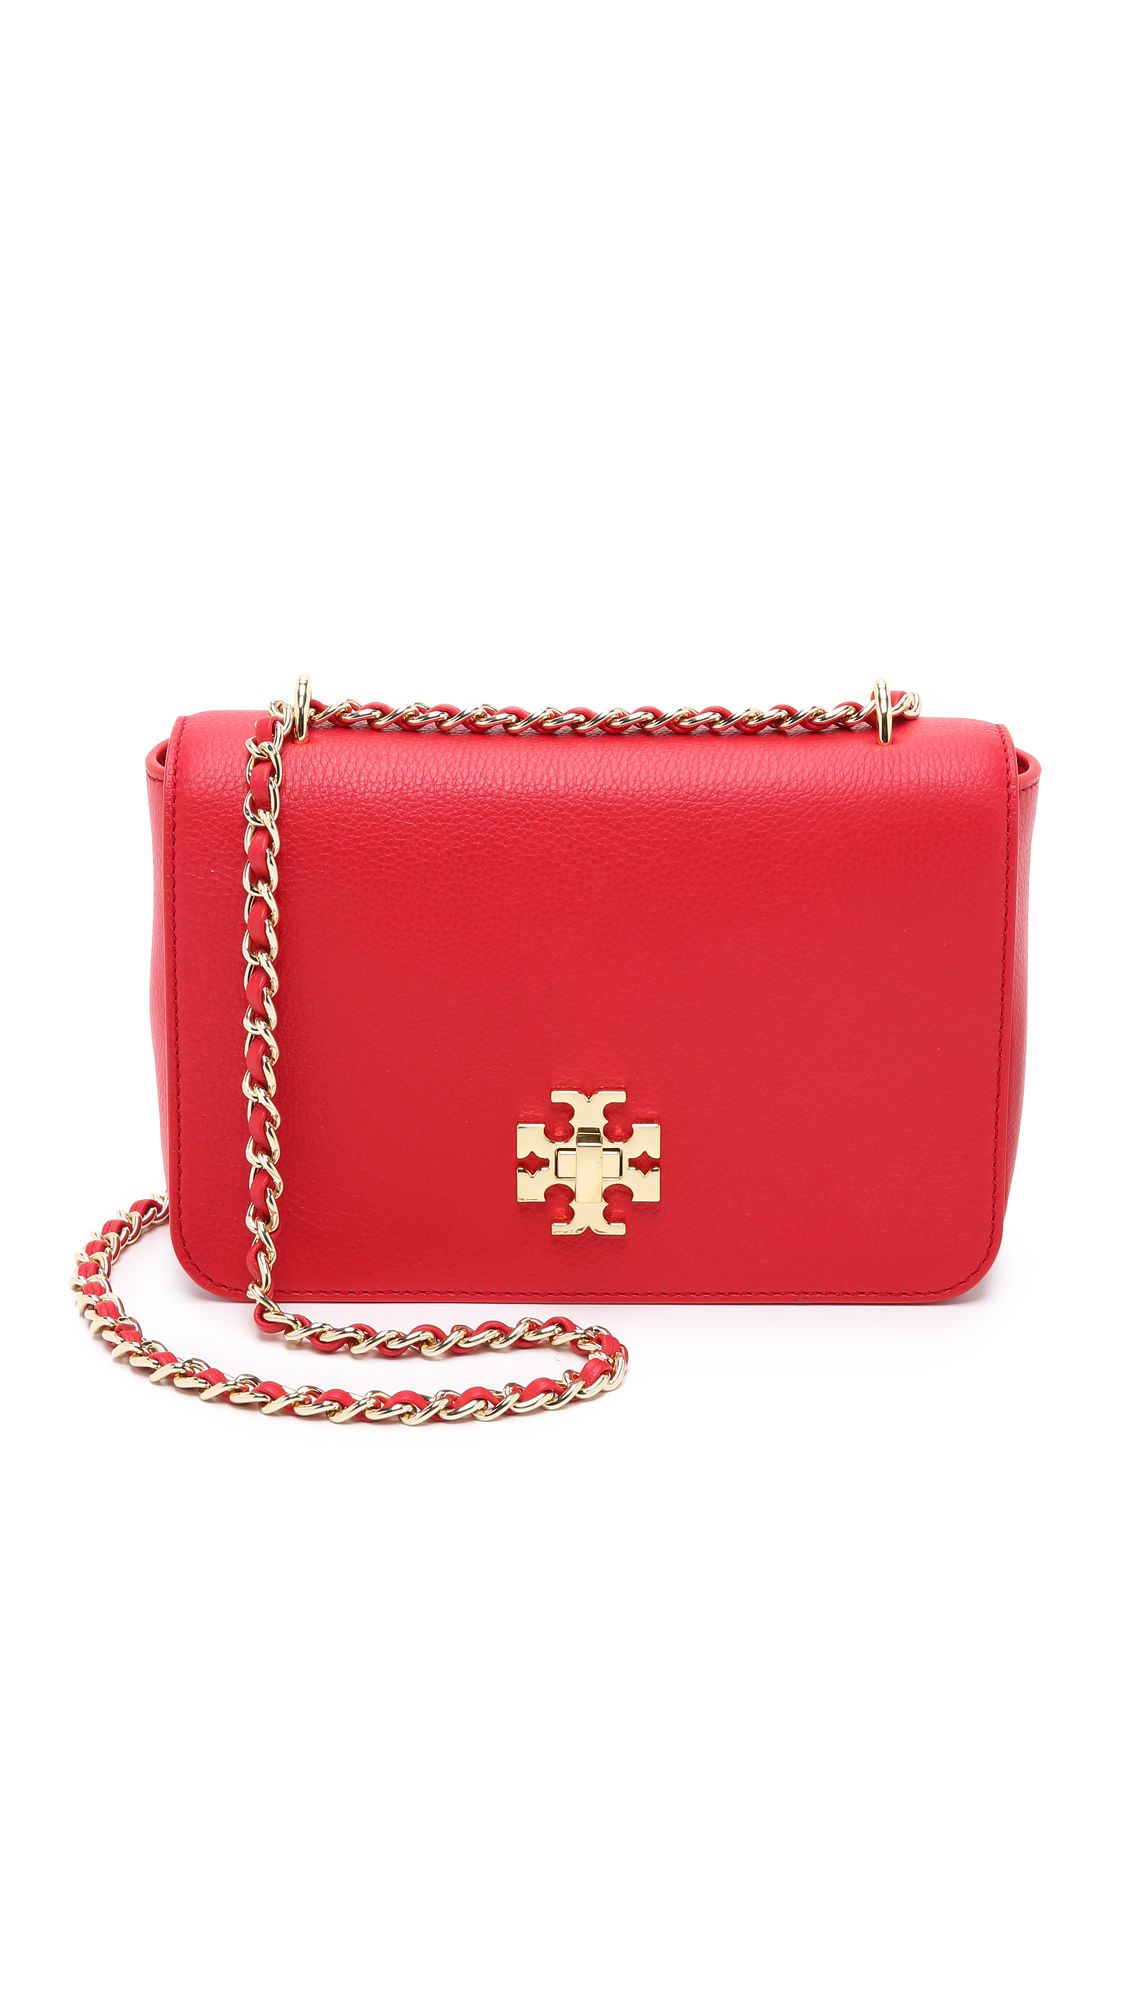 653b8093f Tory Burch Mercer Adjustable Shoulder Bag - Vermillion